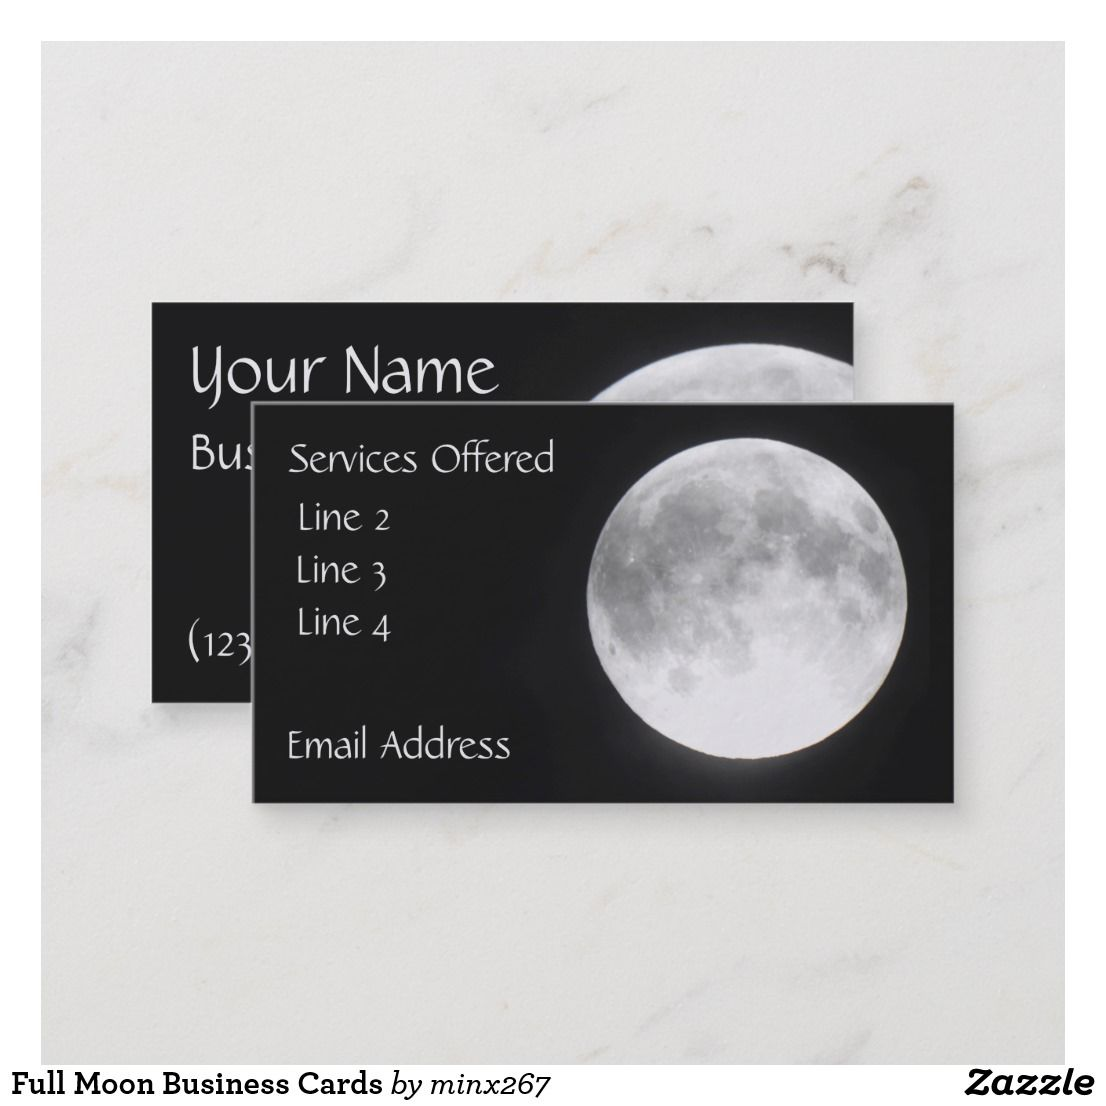 Full Moon Business Cards Zazzle Com Printing Double Sided Business Cards Cards